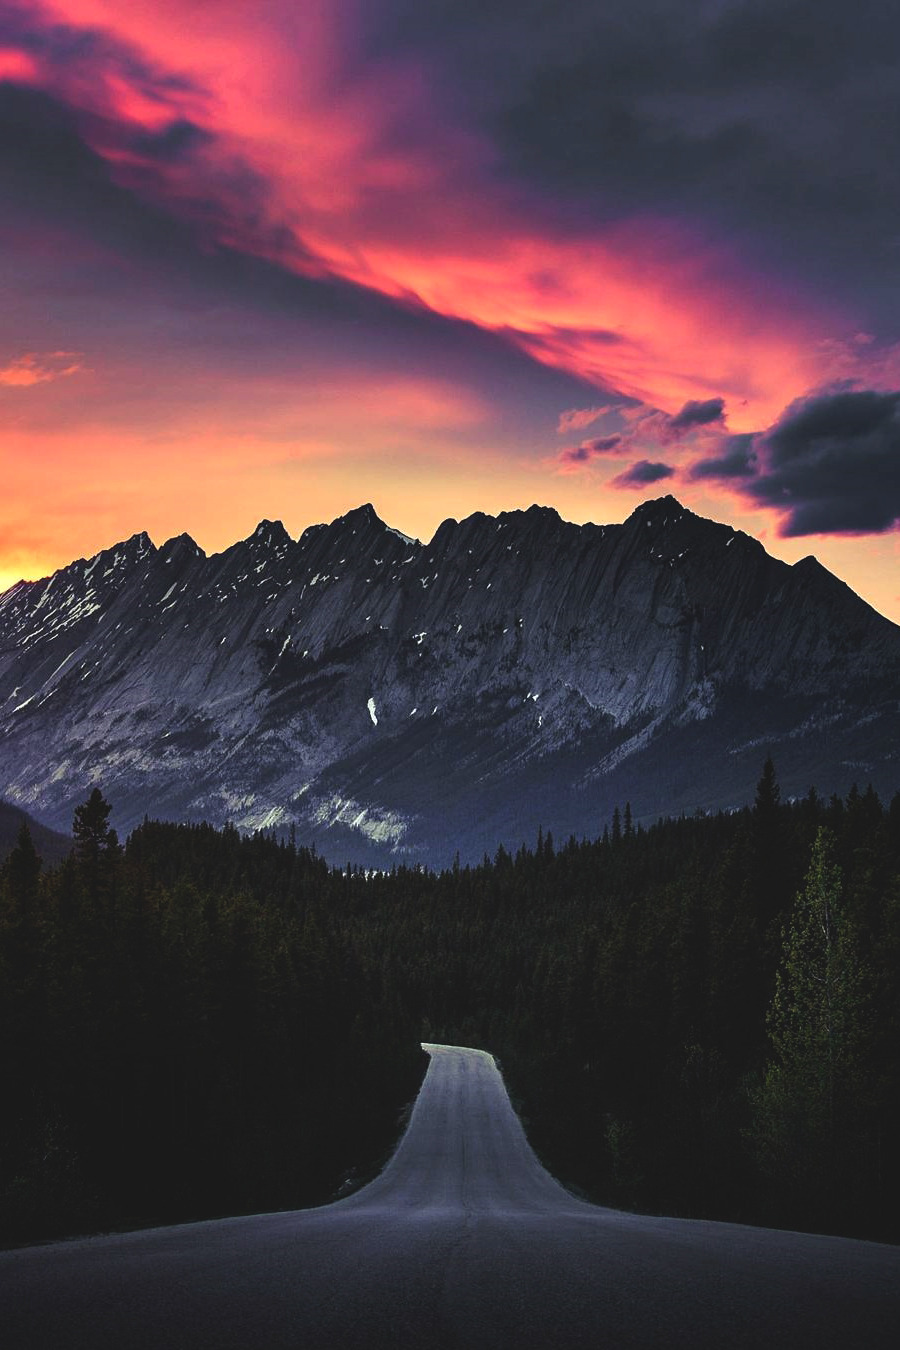 mountain road with dramatic sky